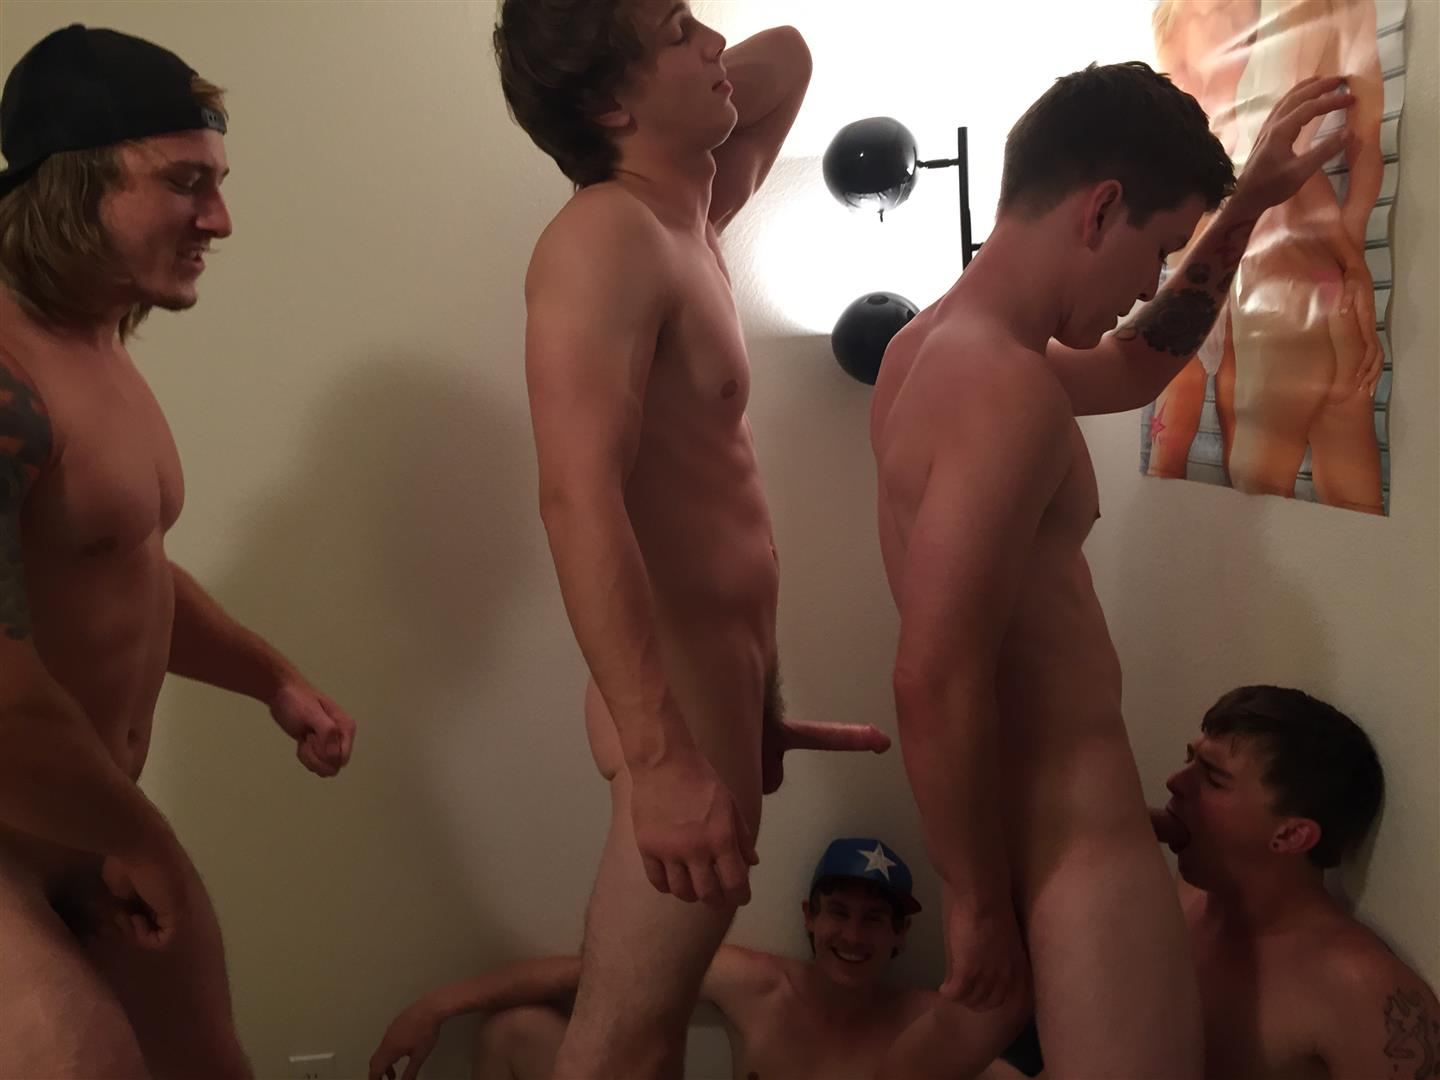 Fraternity-X-Naked-Frat-Boys-Barebacking-Freshman-Ass-Amateur-Gay-Porn-16 Fraternity Boys Take Turns Barebacking A Scared Freshman Ass